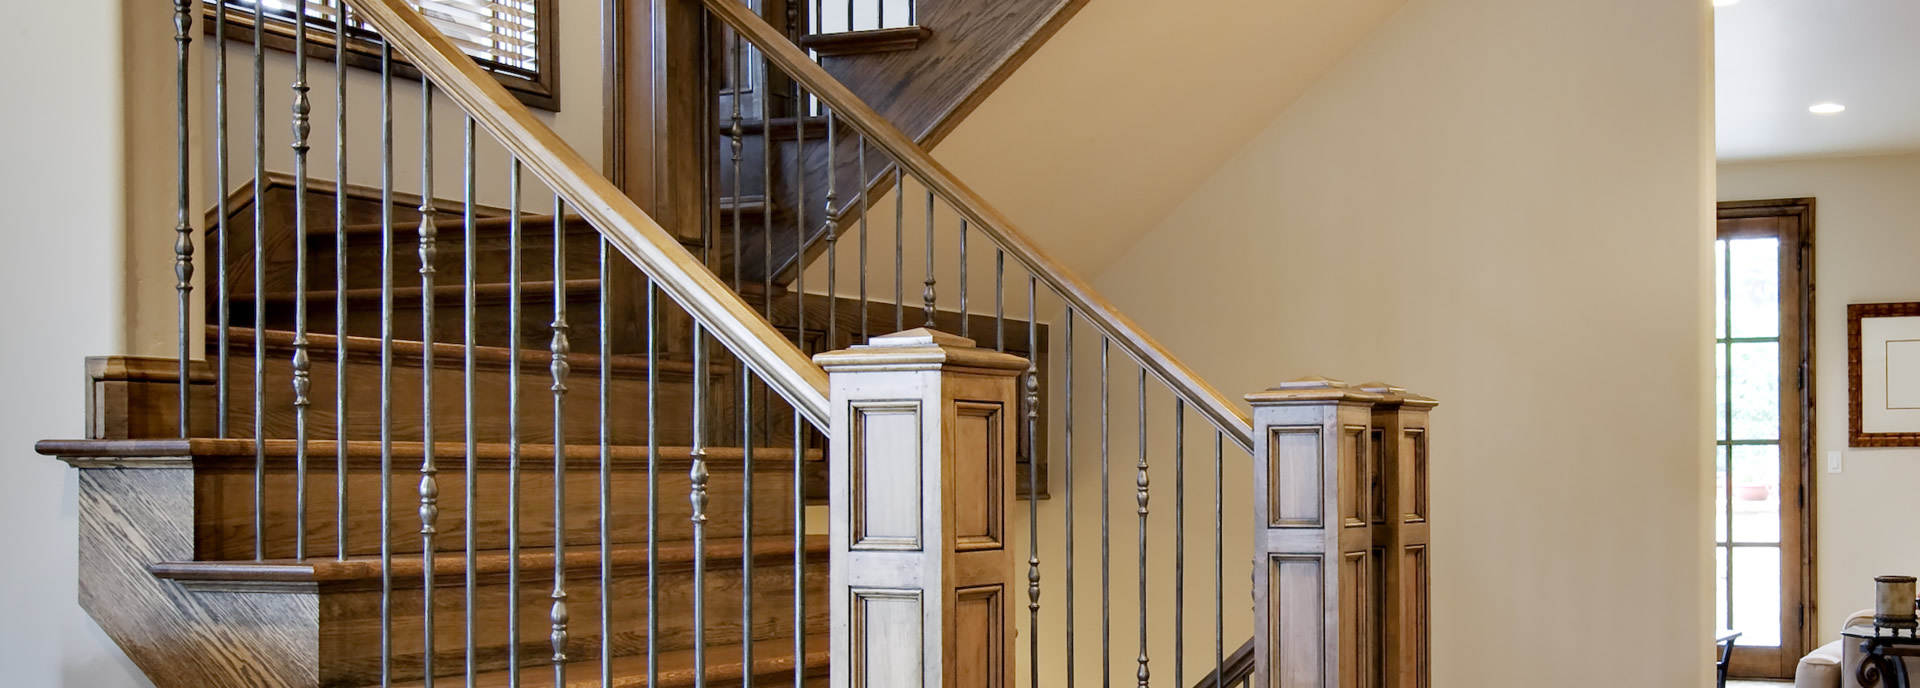 Design Options for a Wrought Iron Stair Railing Alpharetta, GA